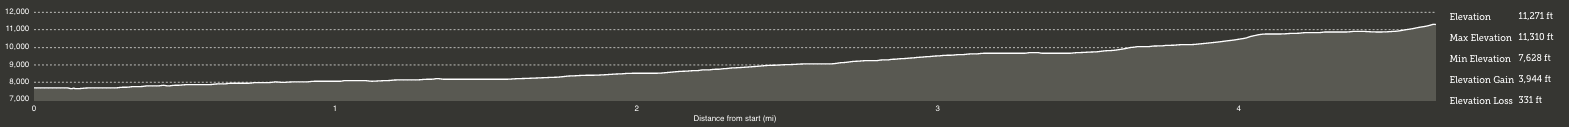 Elevation profile for hiking to the summit of Salt Lake City's Pfeifferhorn